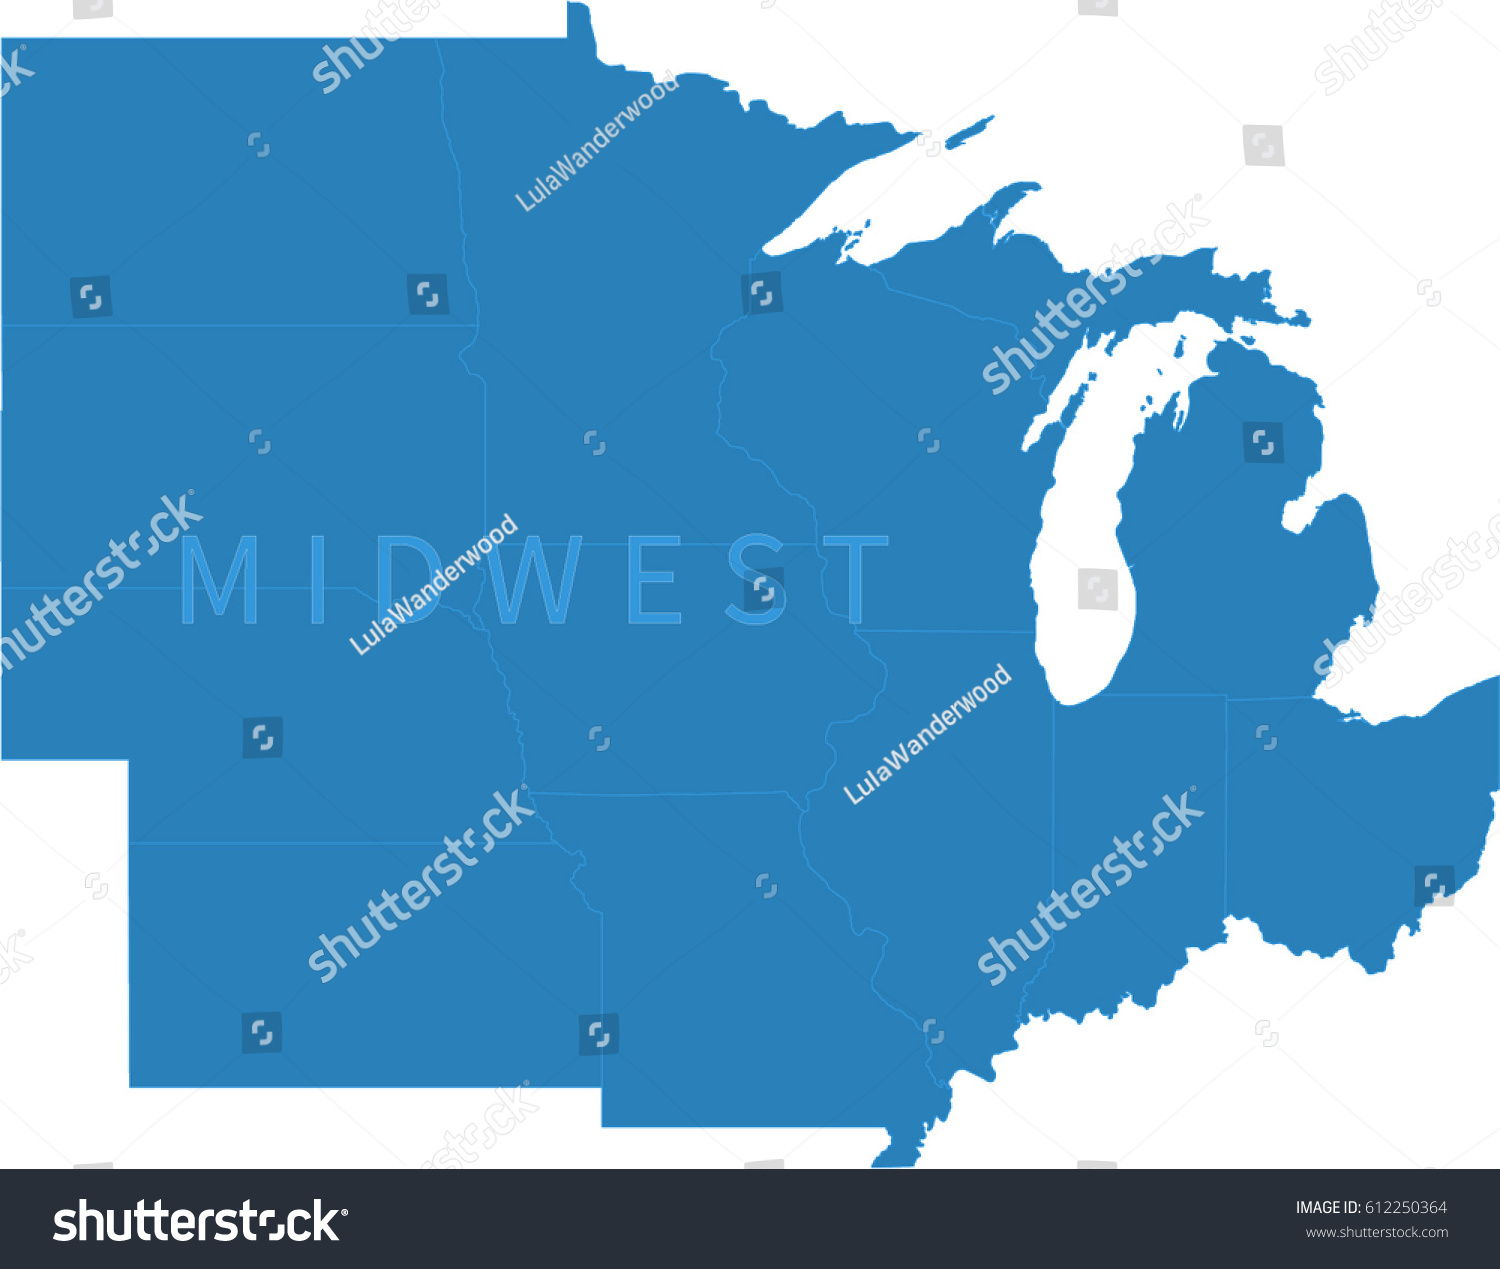 US MAP 12 Ways To Map The Midwest Maps Usa Map Midwest